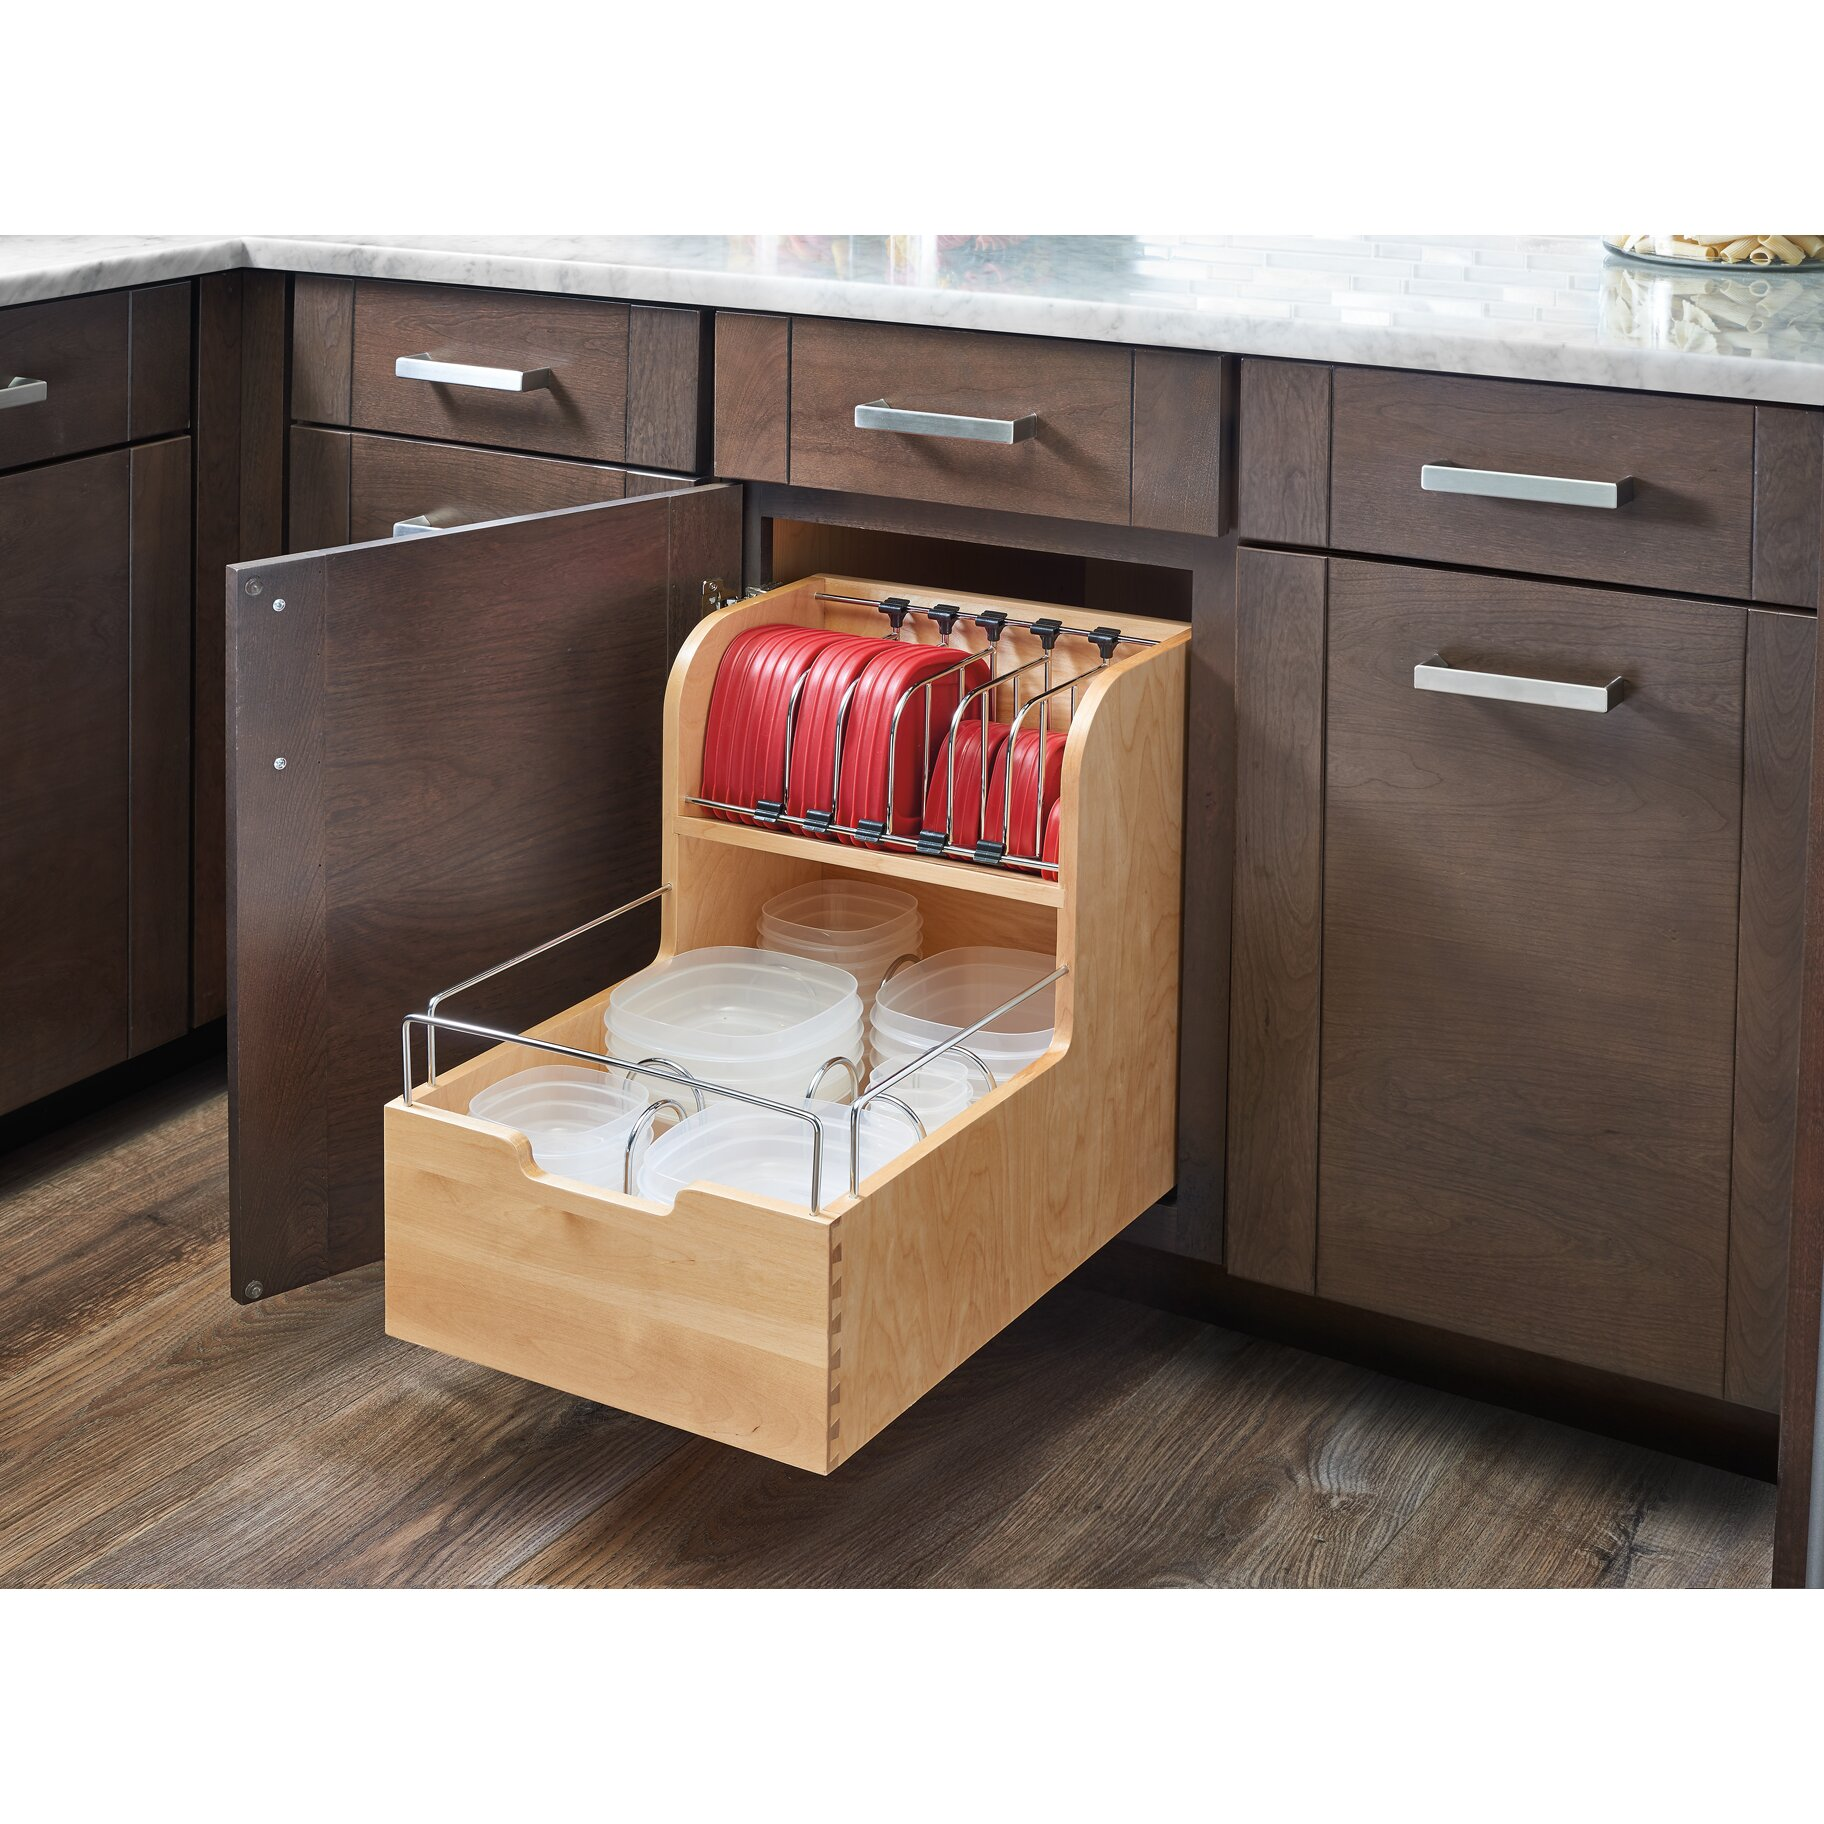 Kitchen Shelf Organiser: Rev-A-Shelf Wood Food Storage Container Organizer For Base